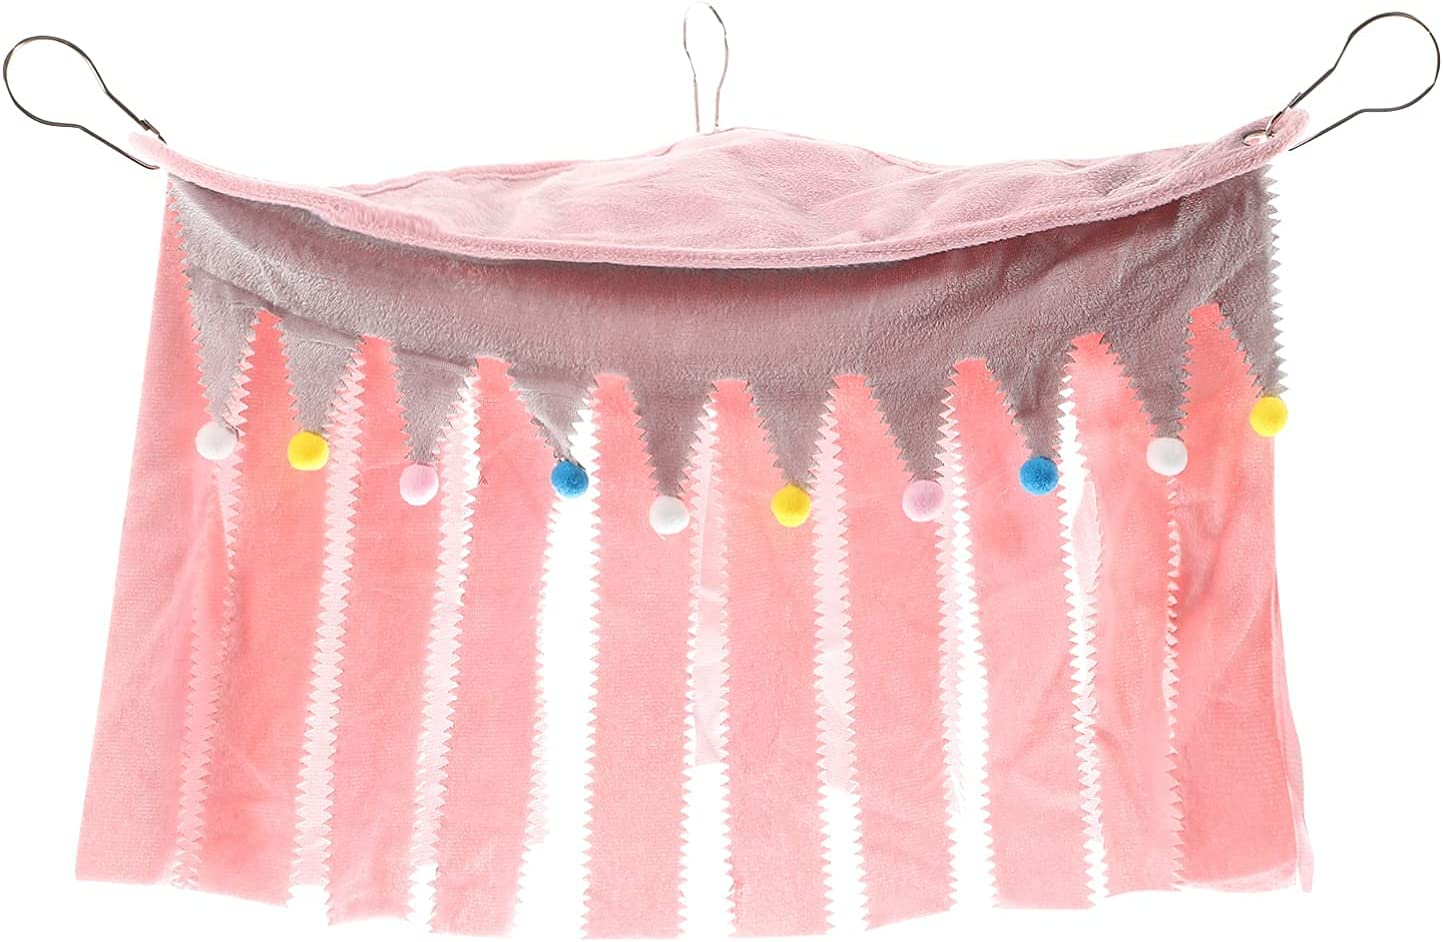 Guinea Max 81% OFF Pig Hideout Recommendation Hideaway Bed Hamster Rabbit H Nest